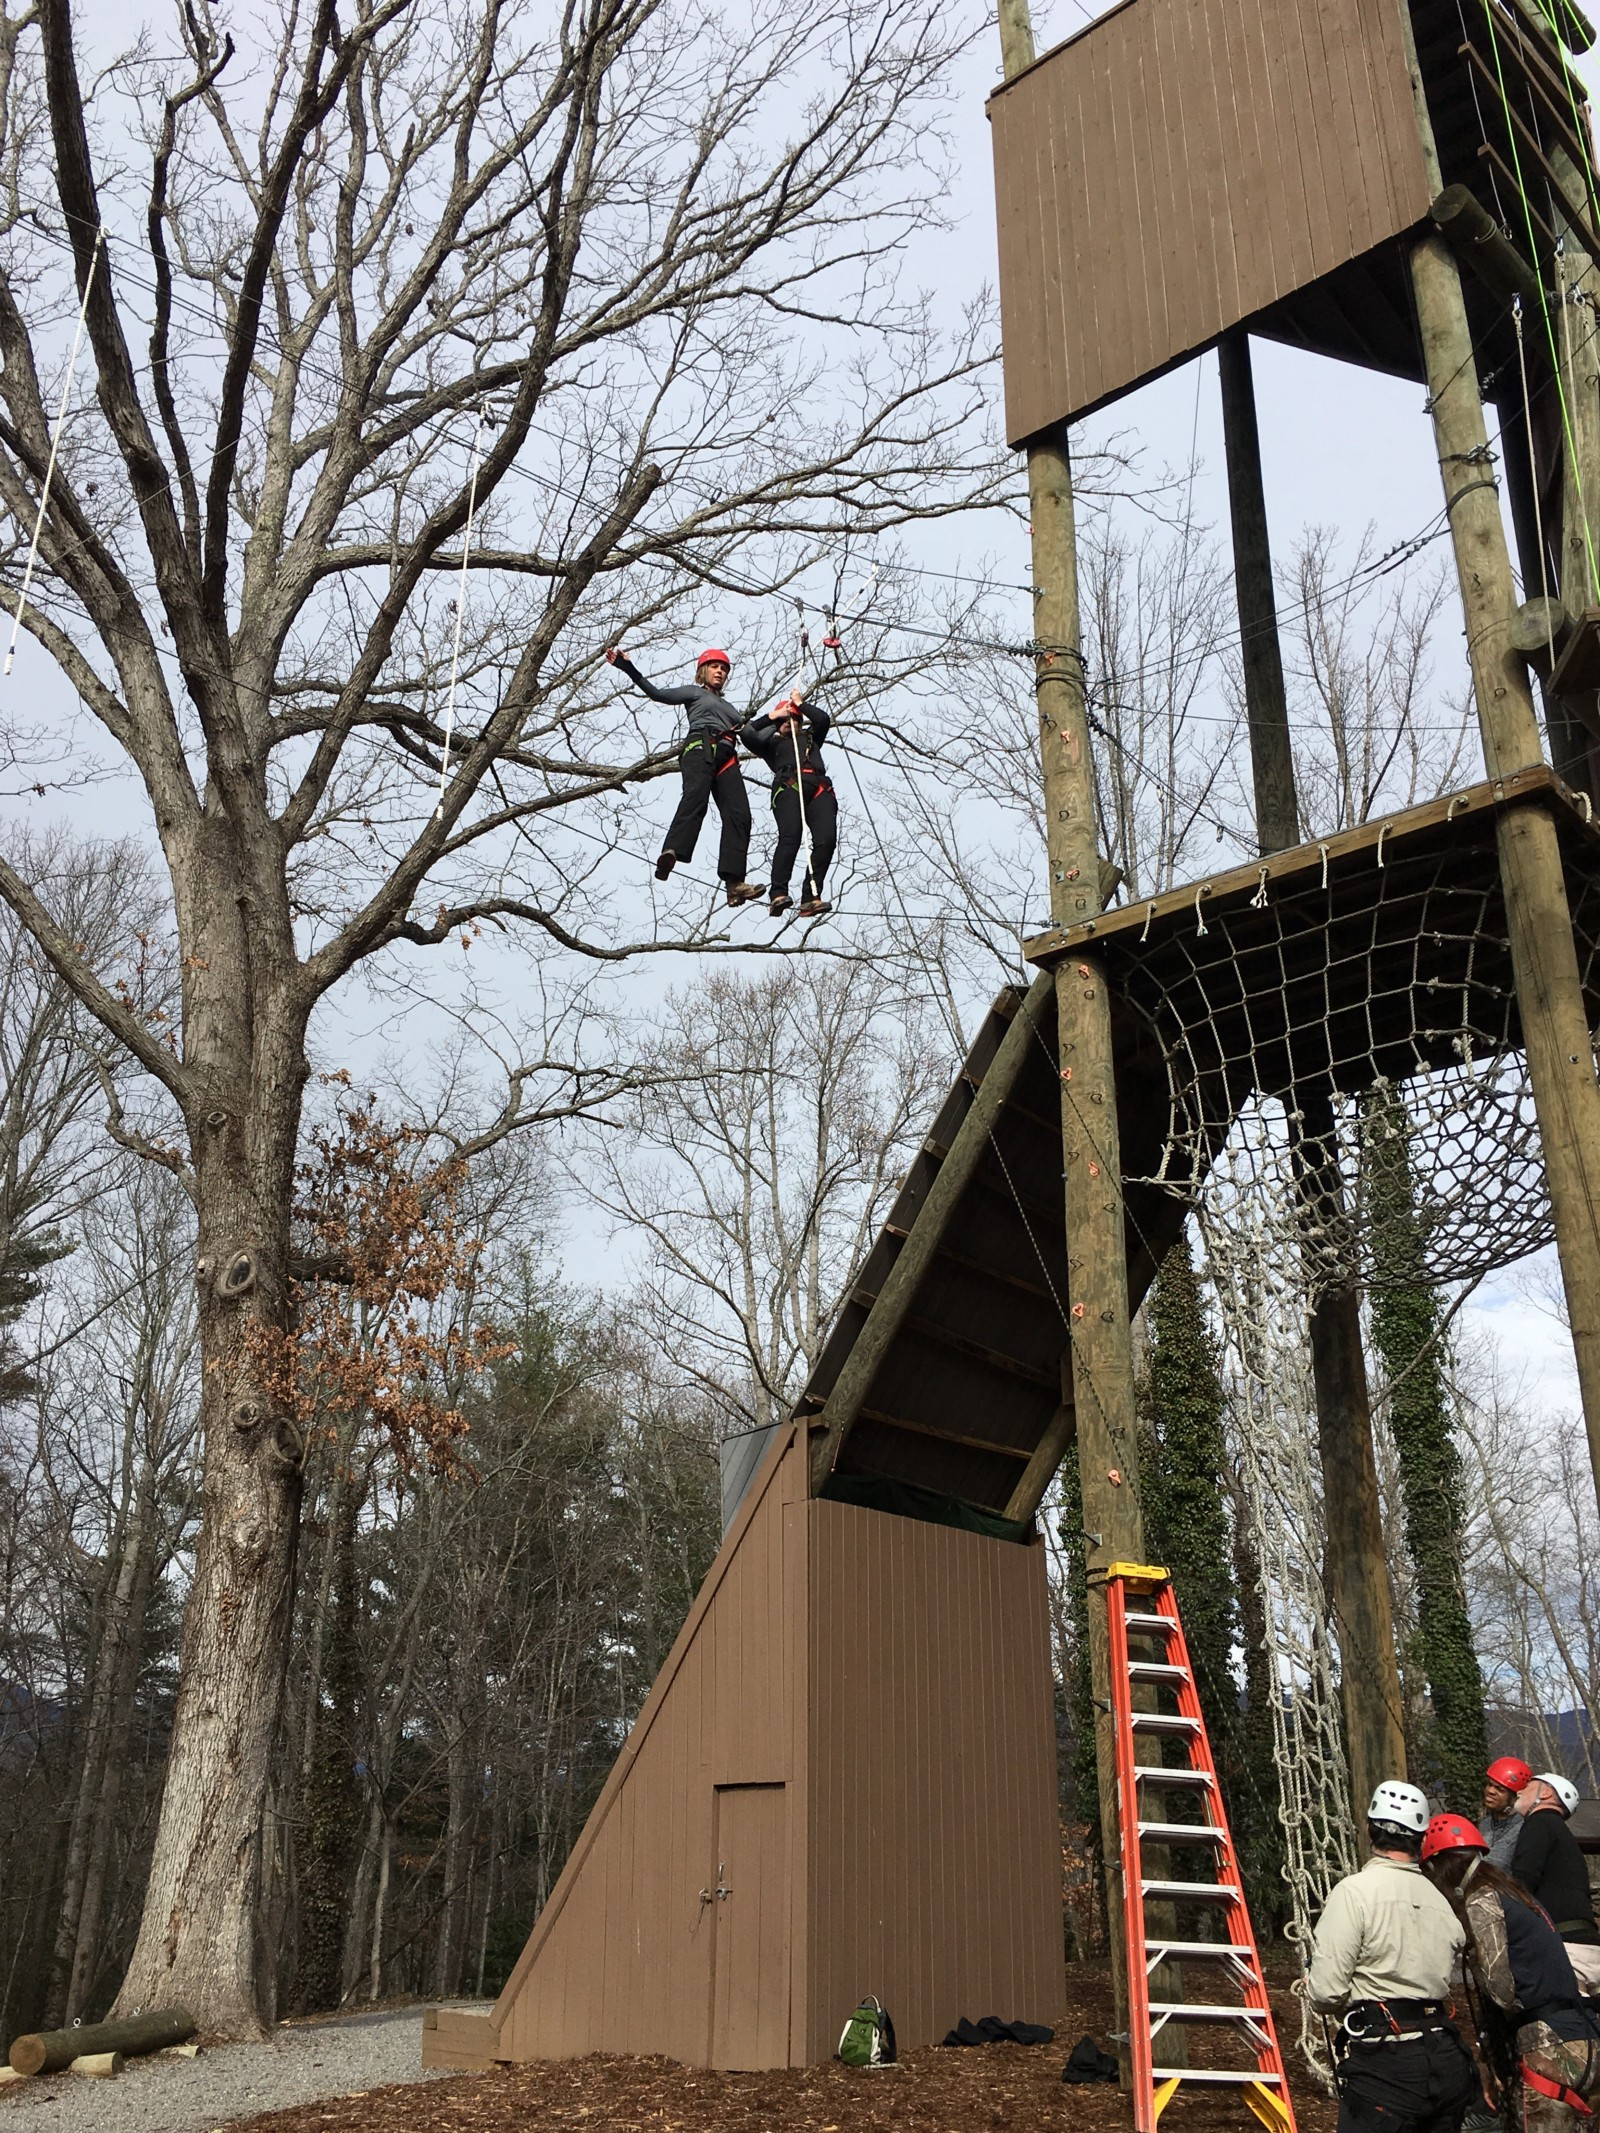 My amazing partner  Carmen Ekdahl and I on the high wire, teaching a workshop to the folks on the ground.